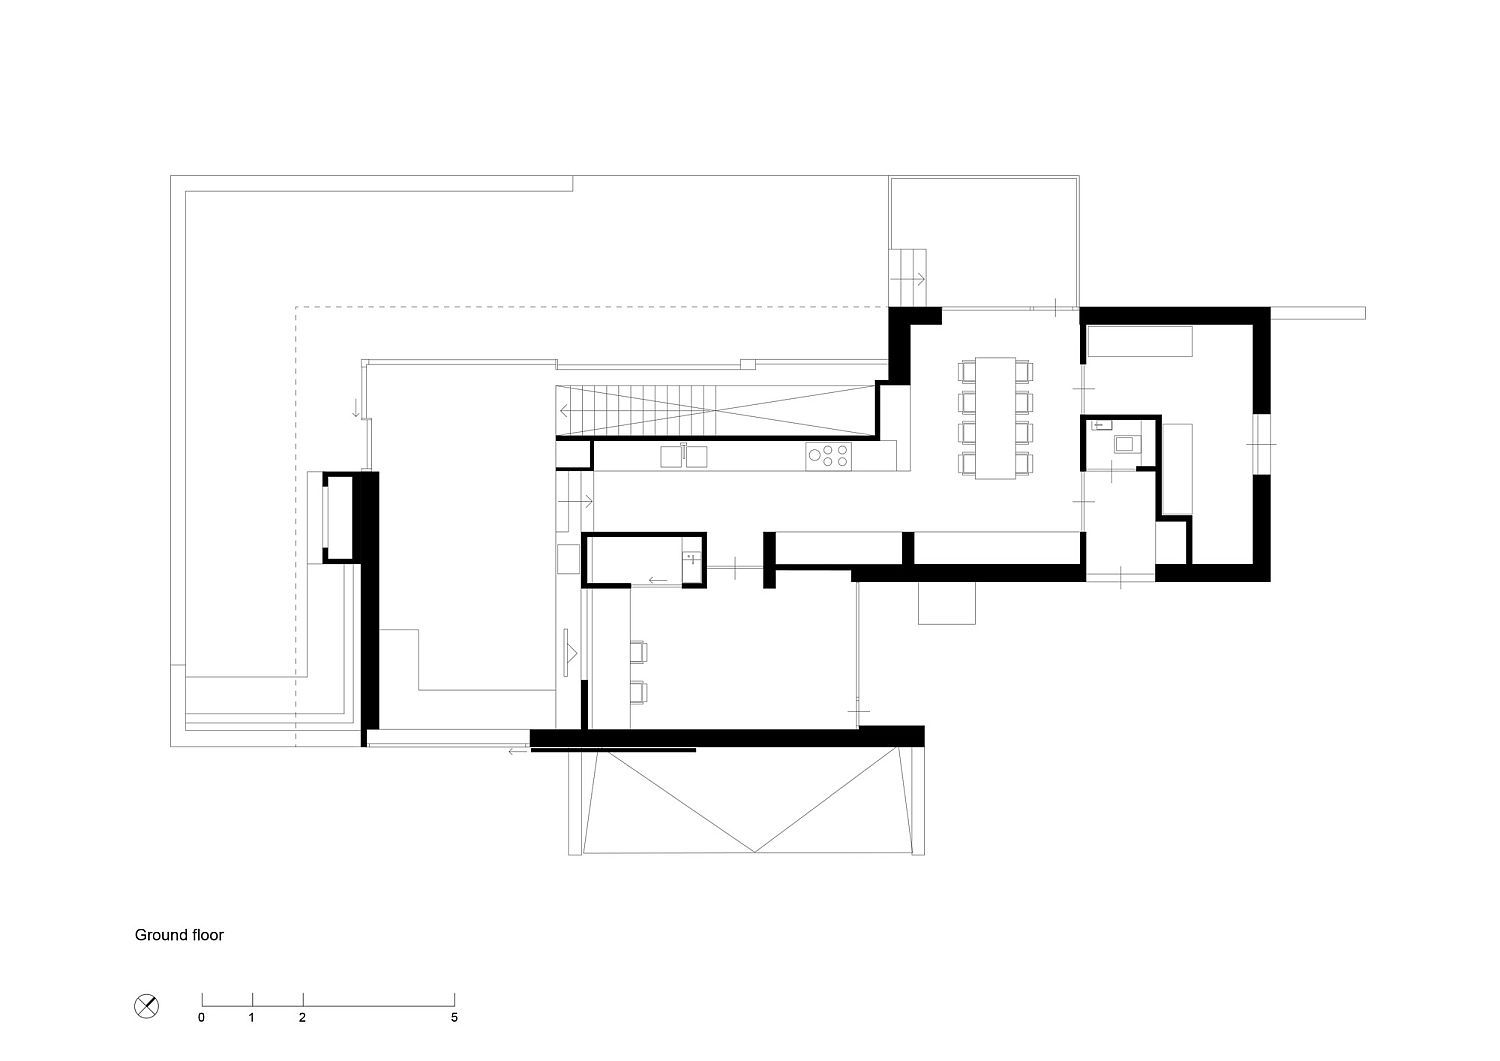 Ground floor plan of the Holiday House